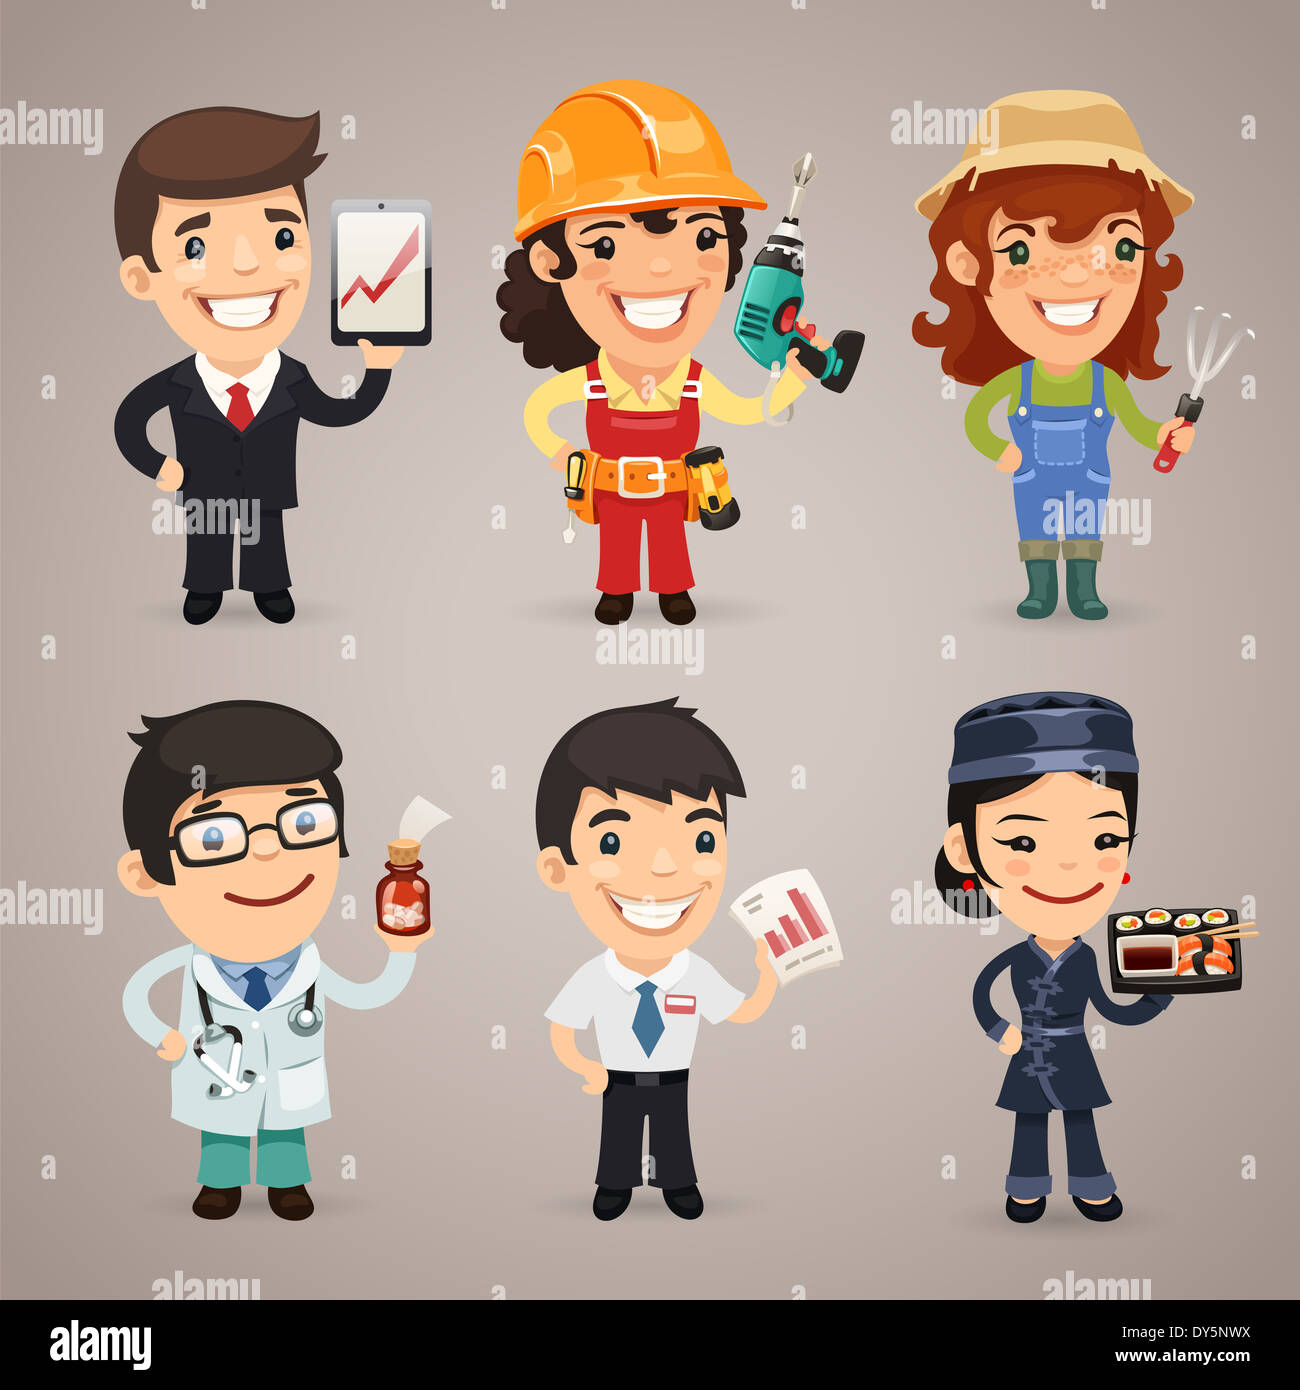 Tischler Comic Carpenter Man Cartoon Stockfotos And Carpenter Man Cartoon